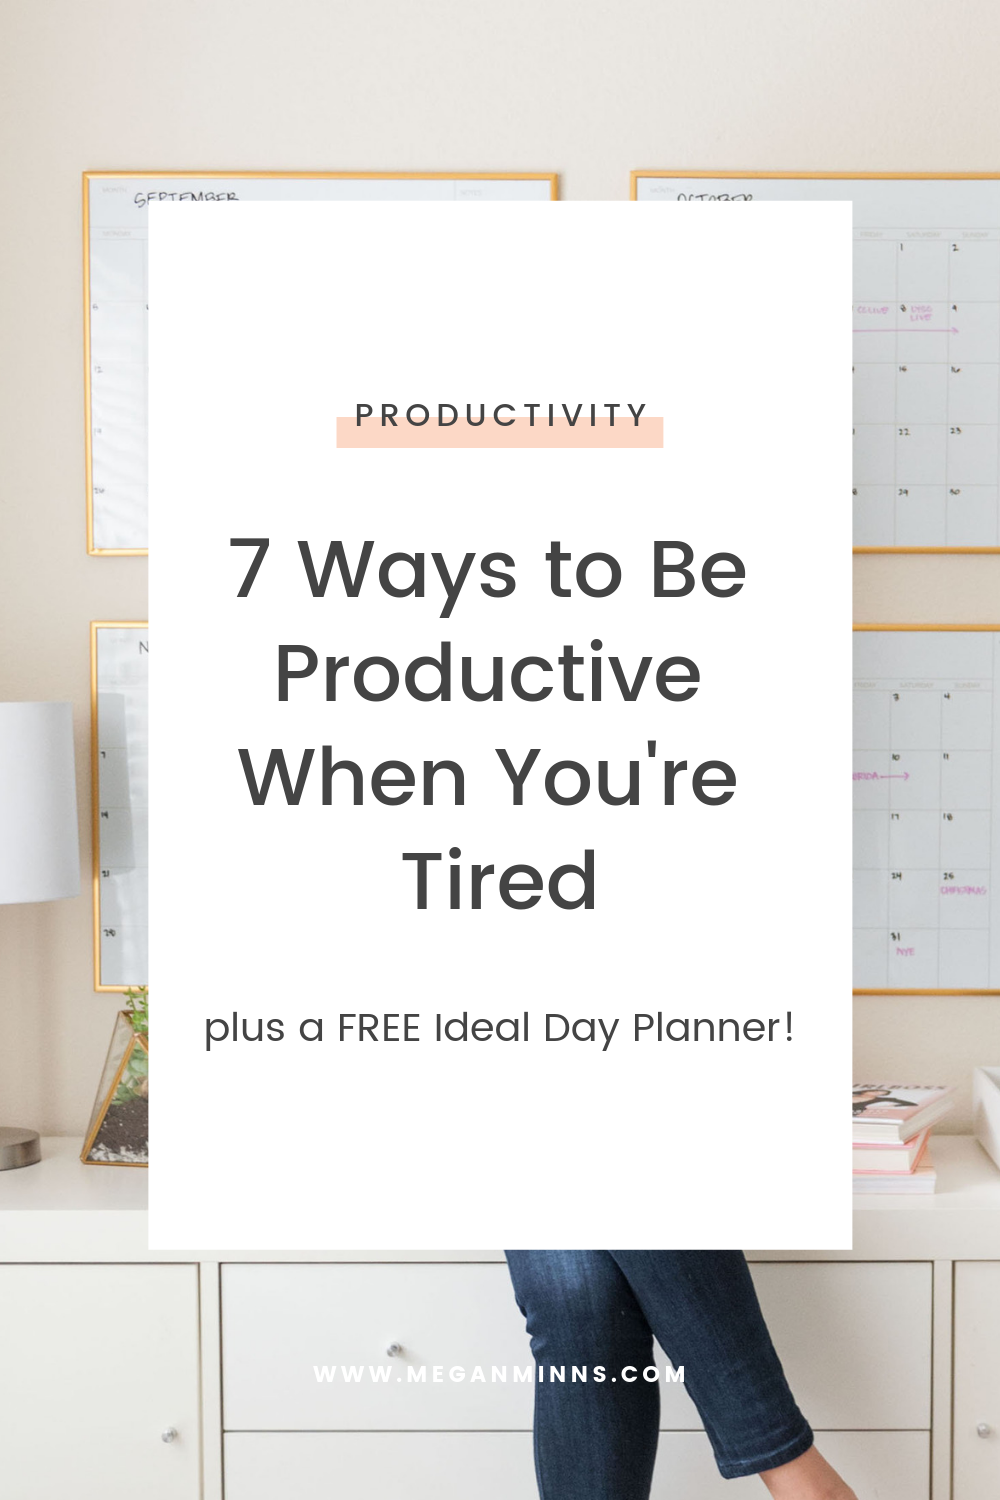 How can you still be productive when you're tired or unmotivated? In this episode of The Productive Life, we're covering 7 strategies to still get to-do lists and the top priorities done. And don't forget to grab our free Ideal Day Planner so you can make planning a sinch. READ THE FULL BLOG POST HERE ▶️  https://meganminns.com/blog/be-productive-when-you-are-tired